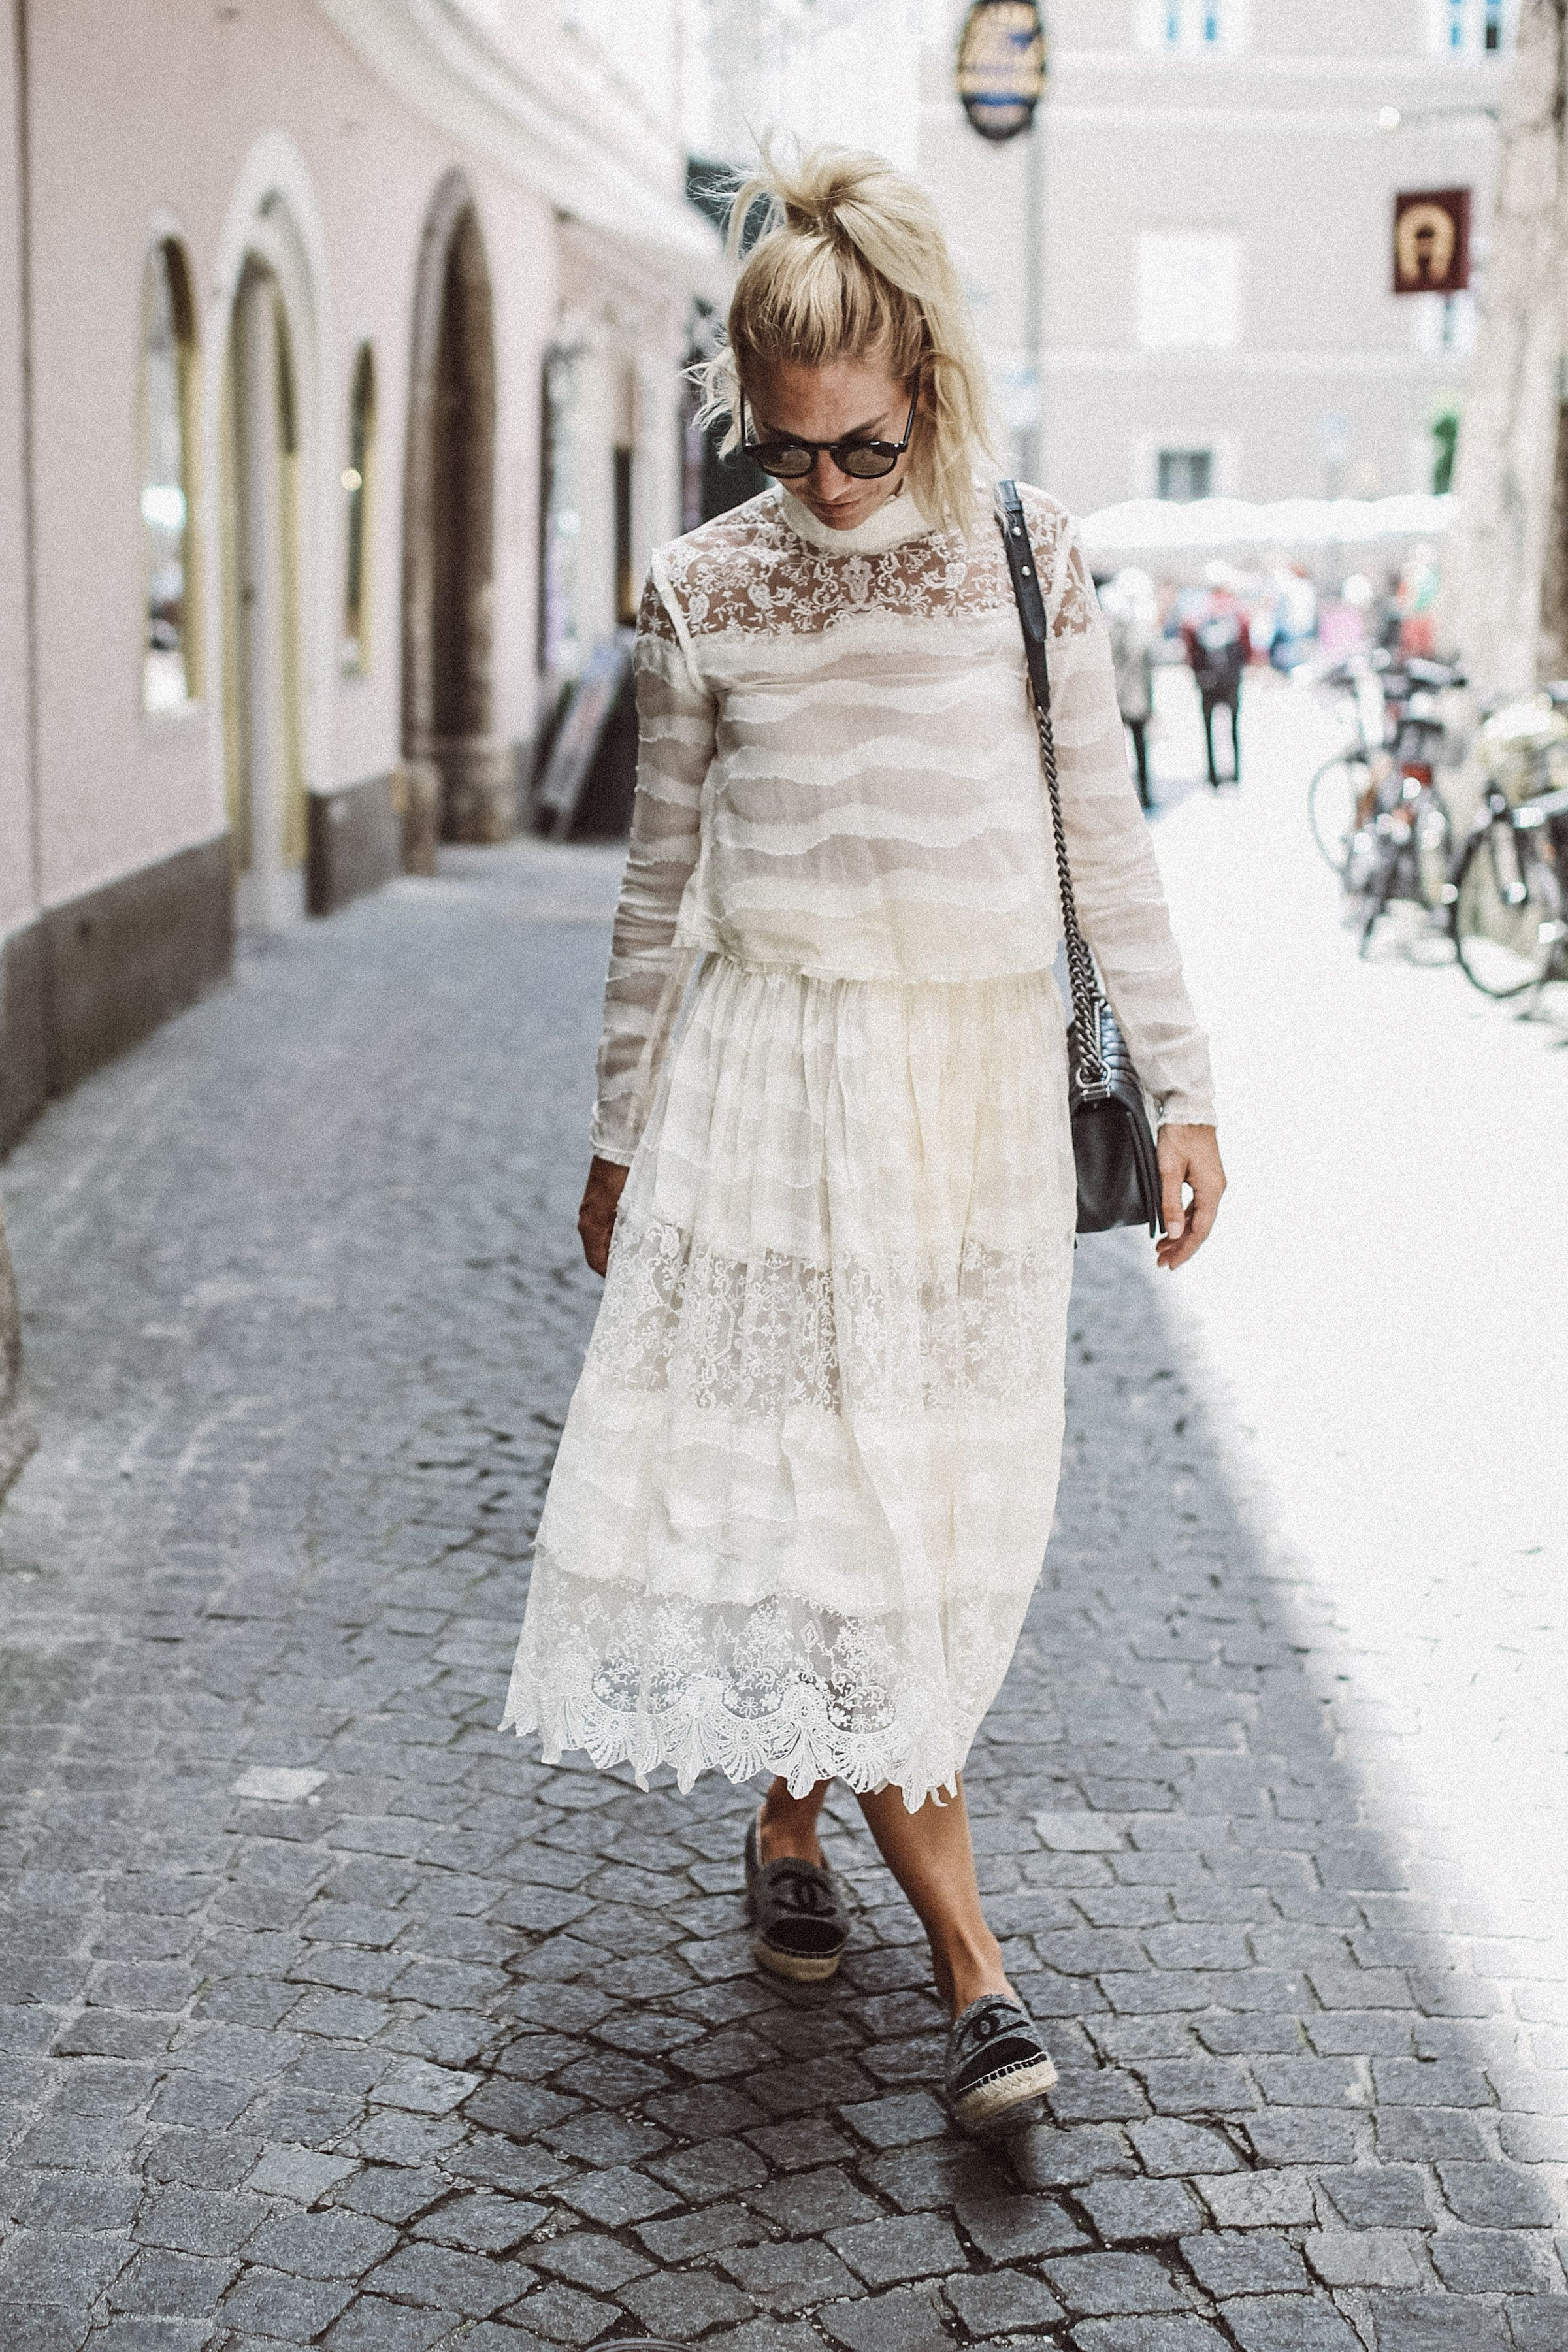 LACE Lover #lace #lacelover #hm #hmstudio #hmconscious #chanel #chanelboy #dress #sightseeing #bloggerfashion #blogpost #austrianblogger #streestyle